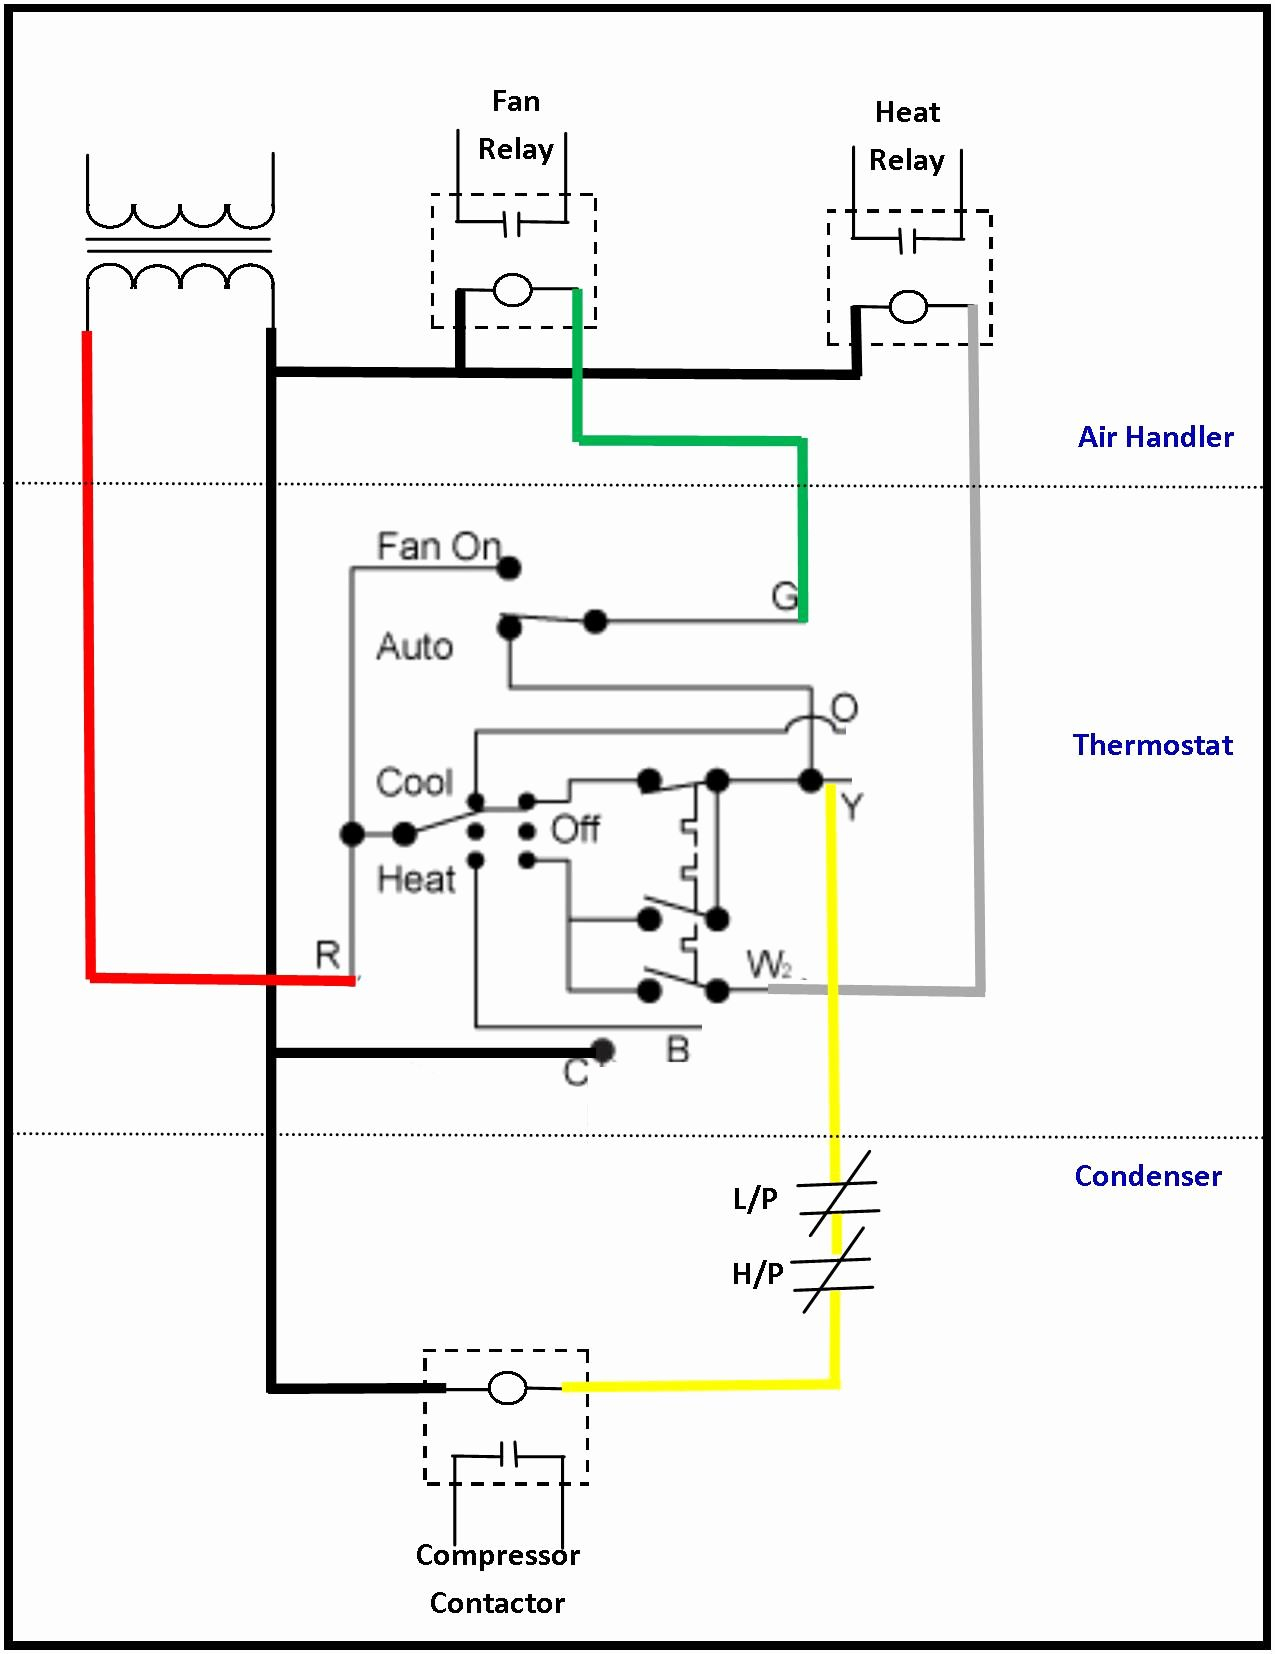 Buck Boost Transformer Wiring Diagram - Trusted Wiring Diagram - Buck Boost Transformer Wiring Diagram